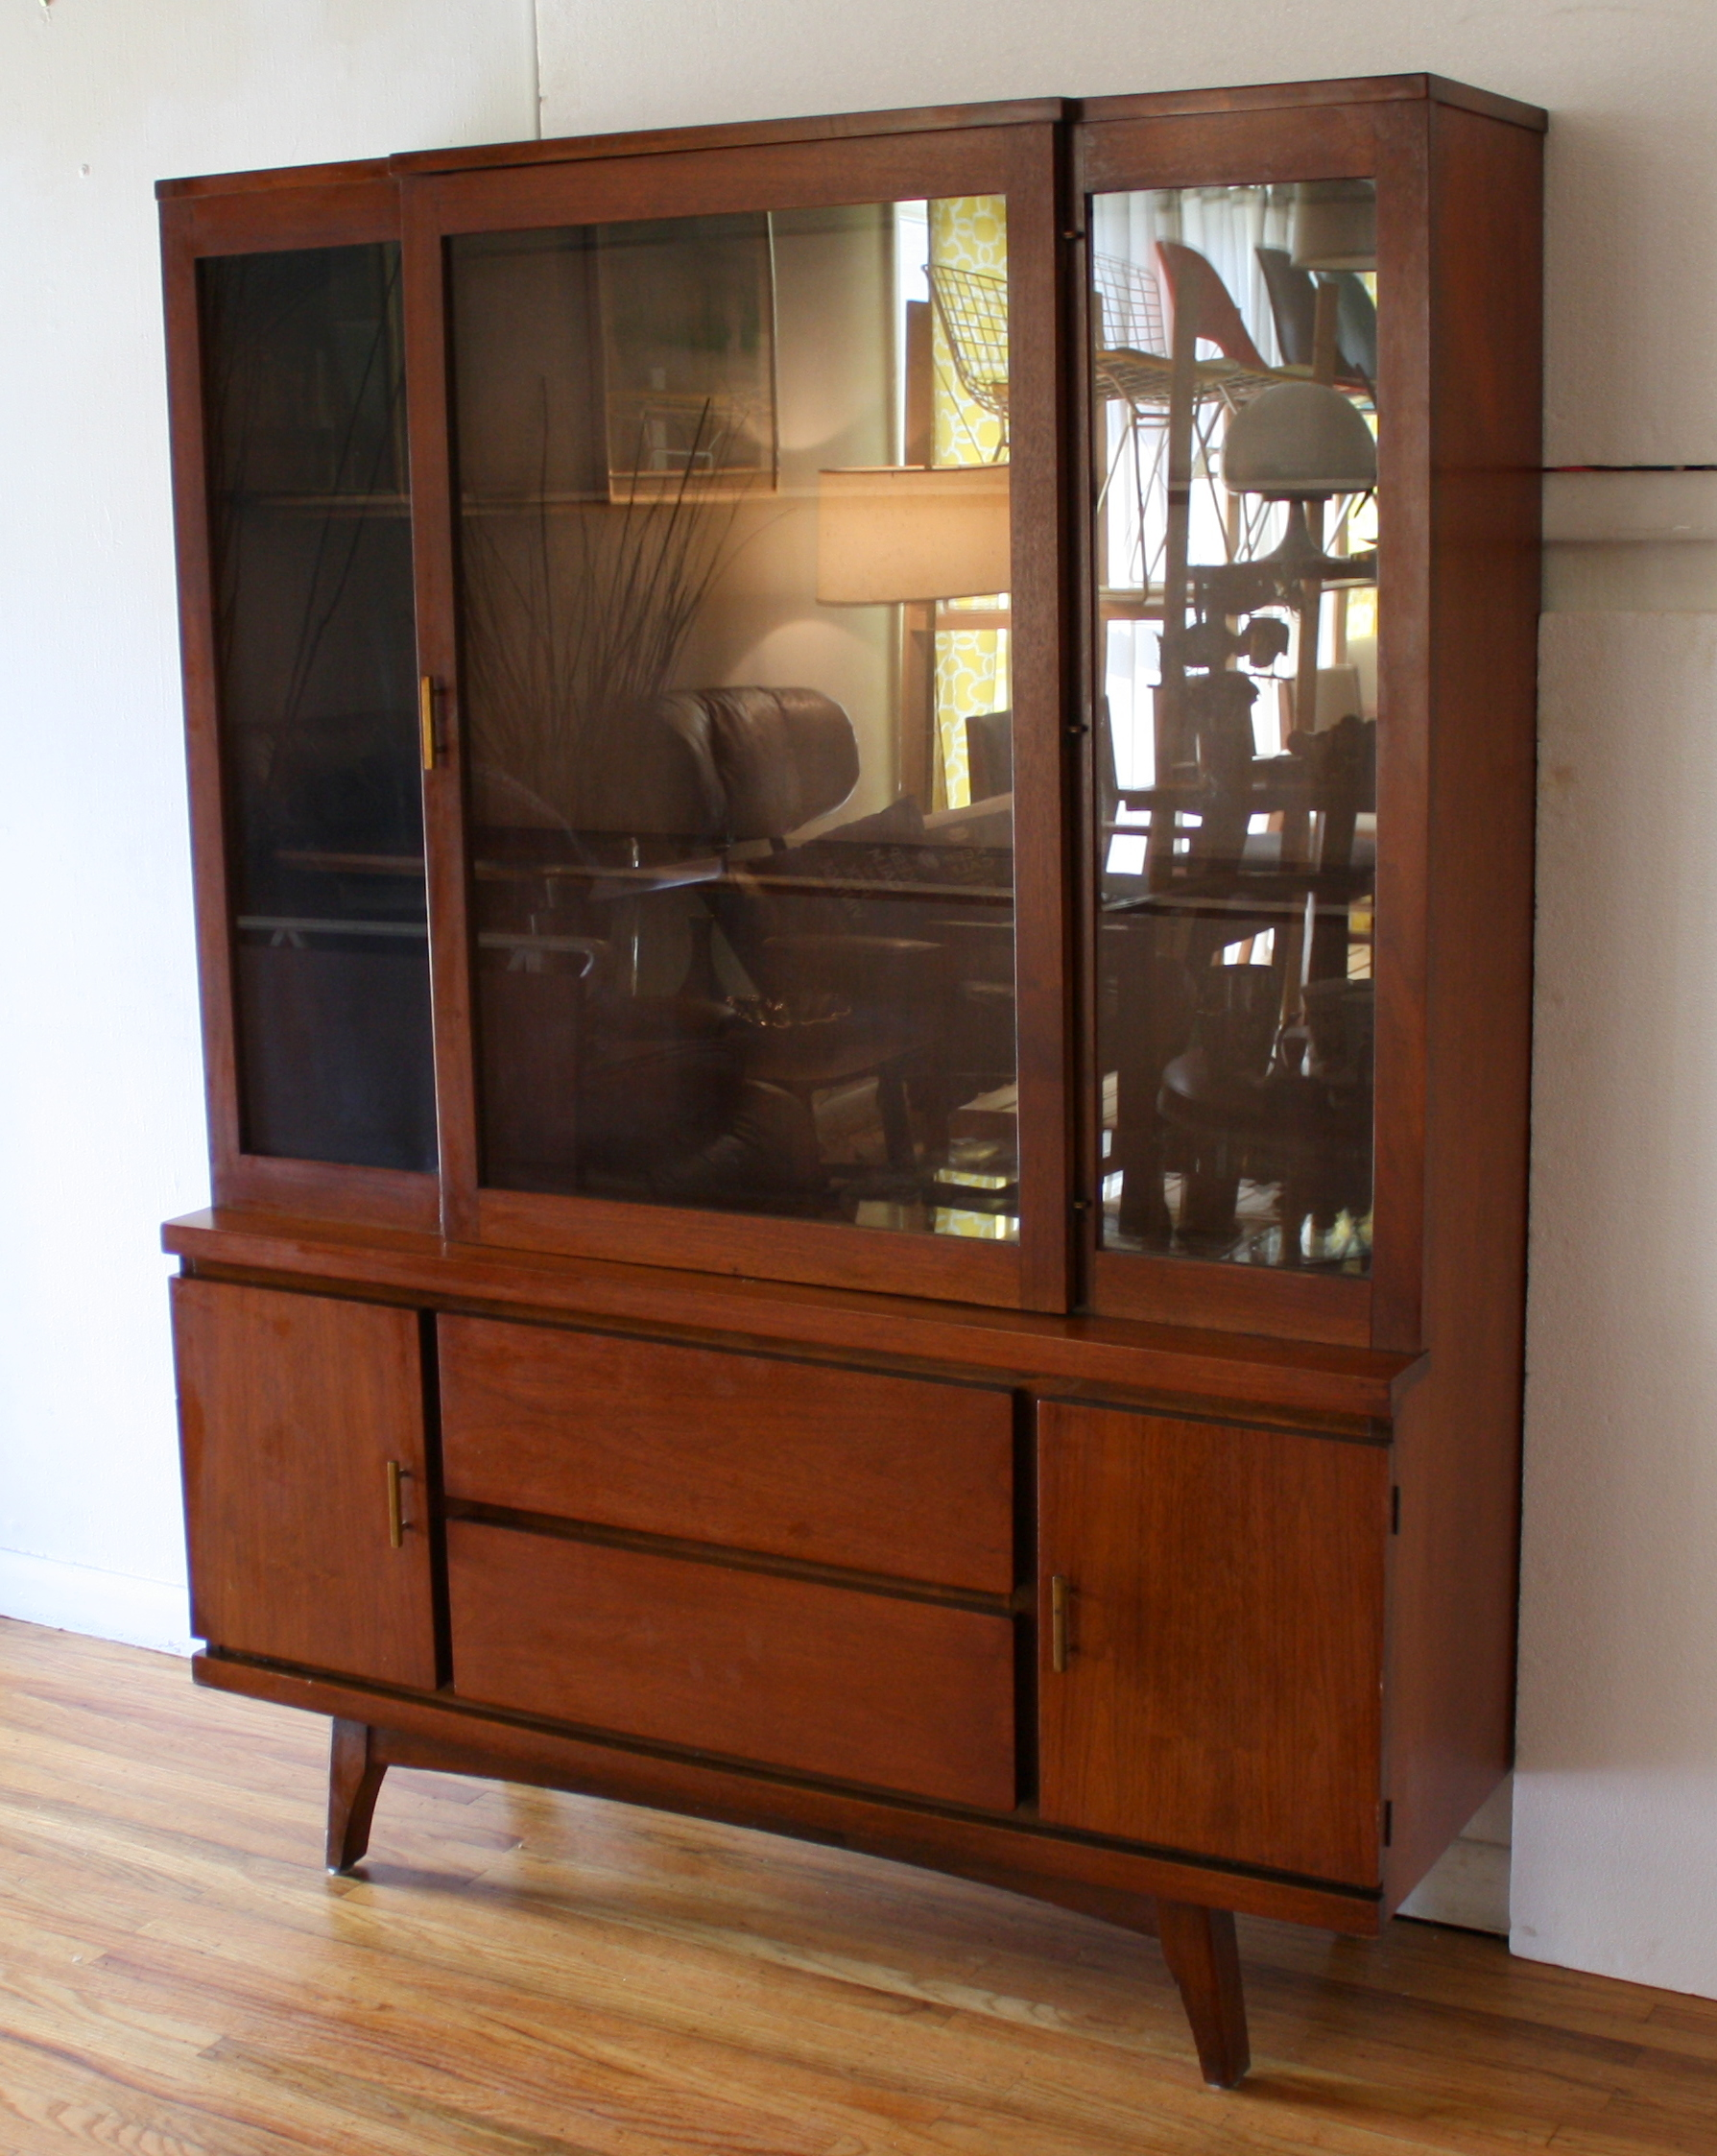 mid century modern china cabinet hutch picked vintage rh pickedvintage com mid century modern china cabinet bassett mid century modern china cabinet